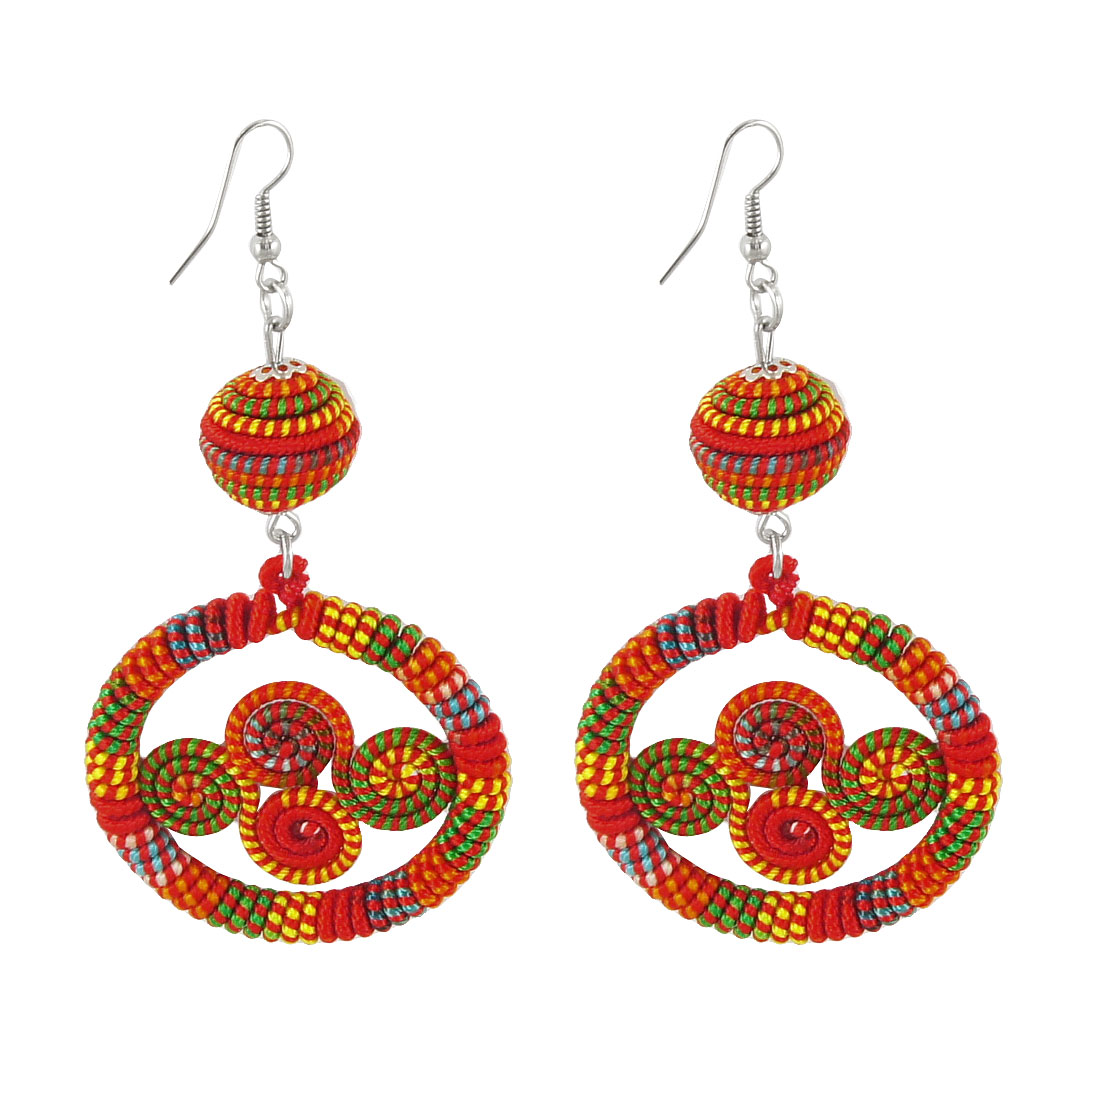 Pair Red Colorful Manual Nylon Cord Spiral Design Metal Fish Hook Earrings